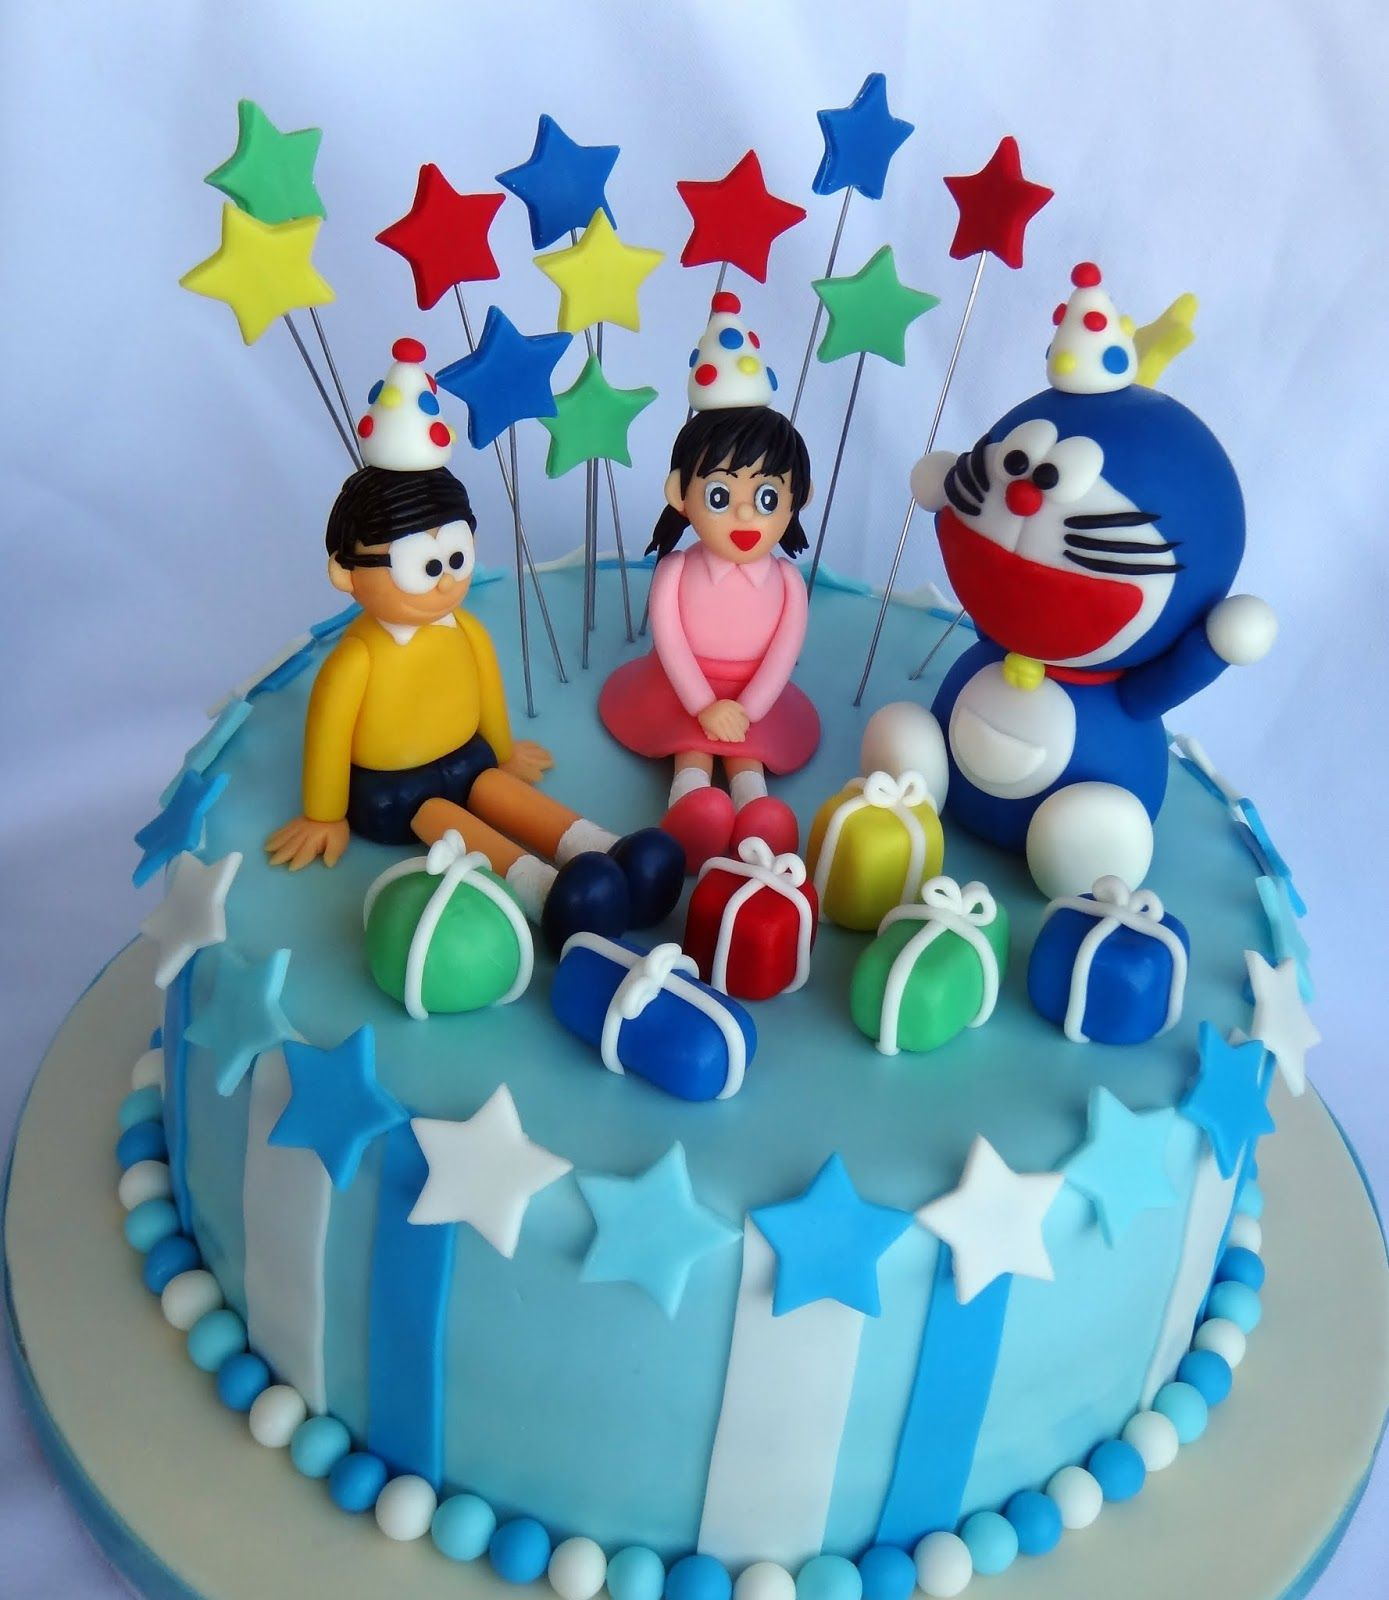 Cake Bunny Doraemon Birthday cartoon doraemon Pinterest